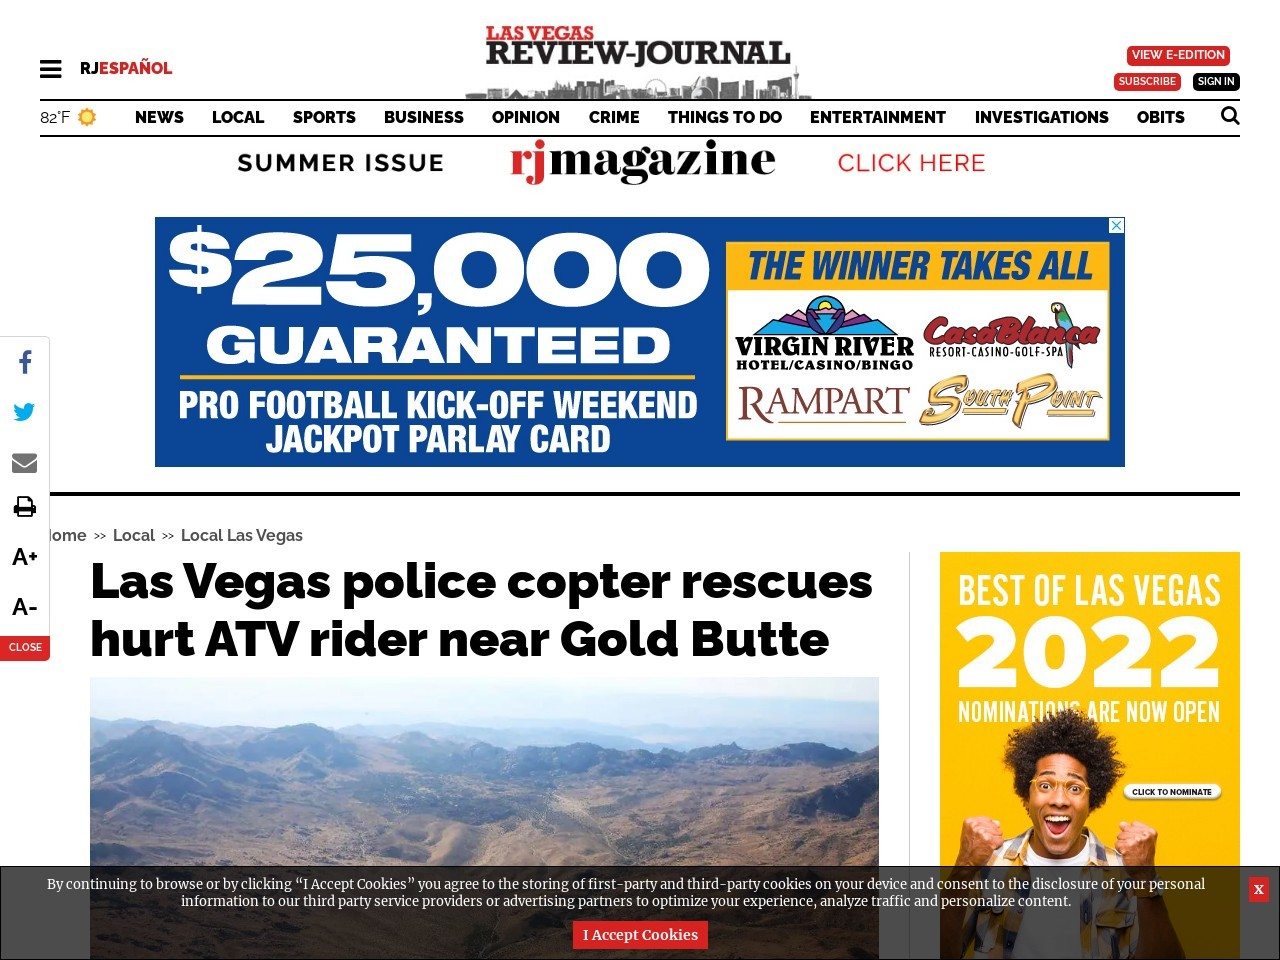 Las Vegas police copter rescues hurt ATV rider near Gold Butte